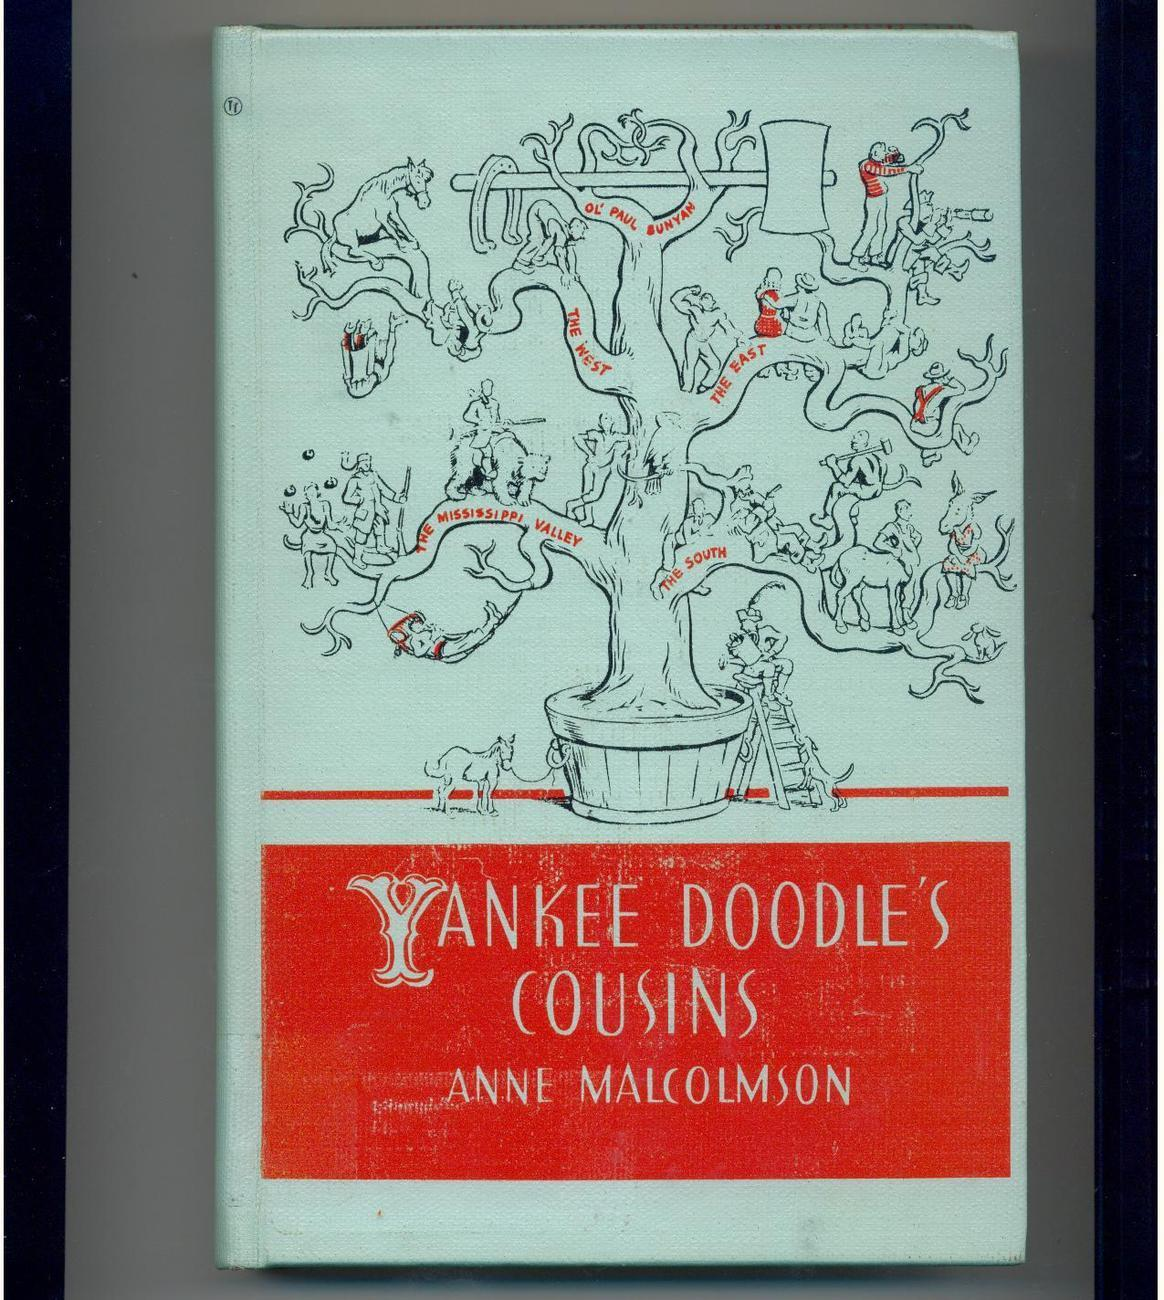 YANKEE DOODLE'S COUSINS - 1941 - tales of folk heroes